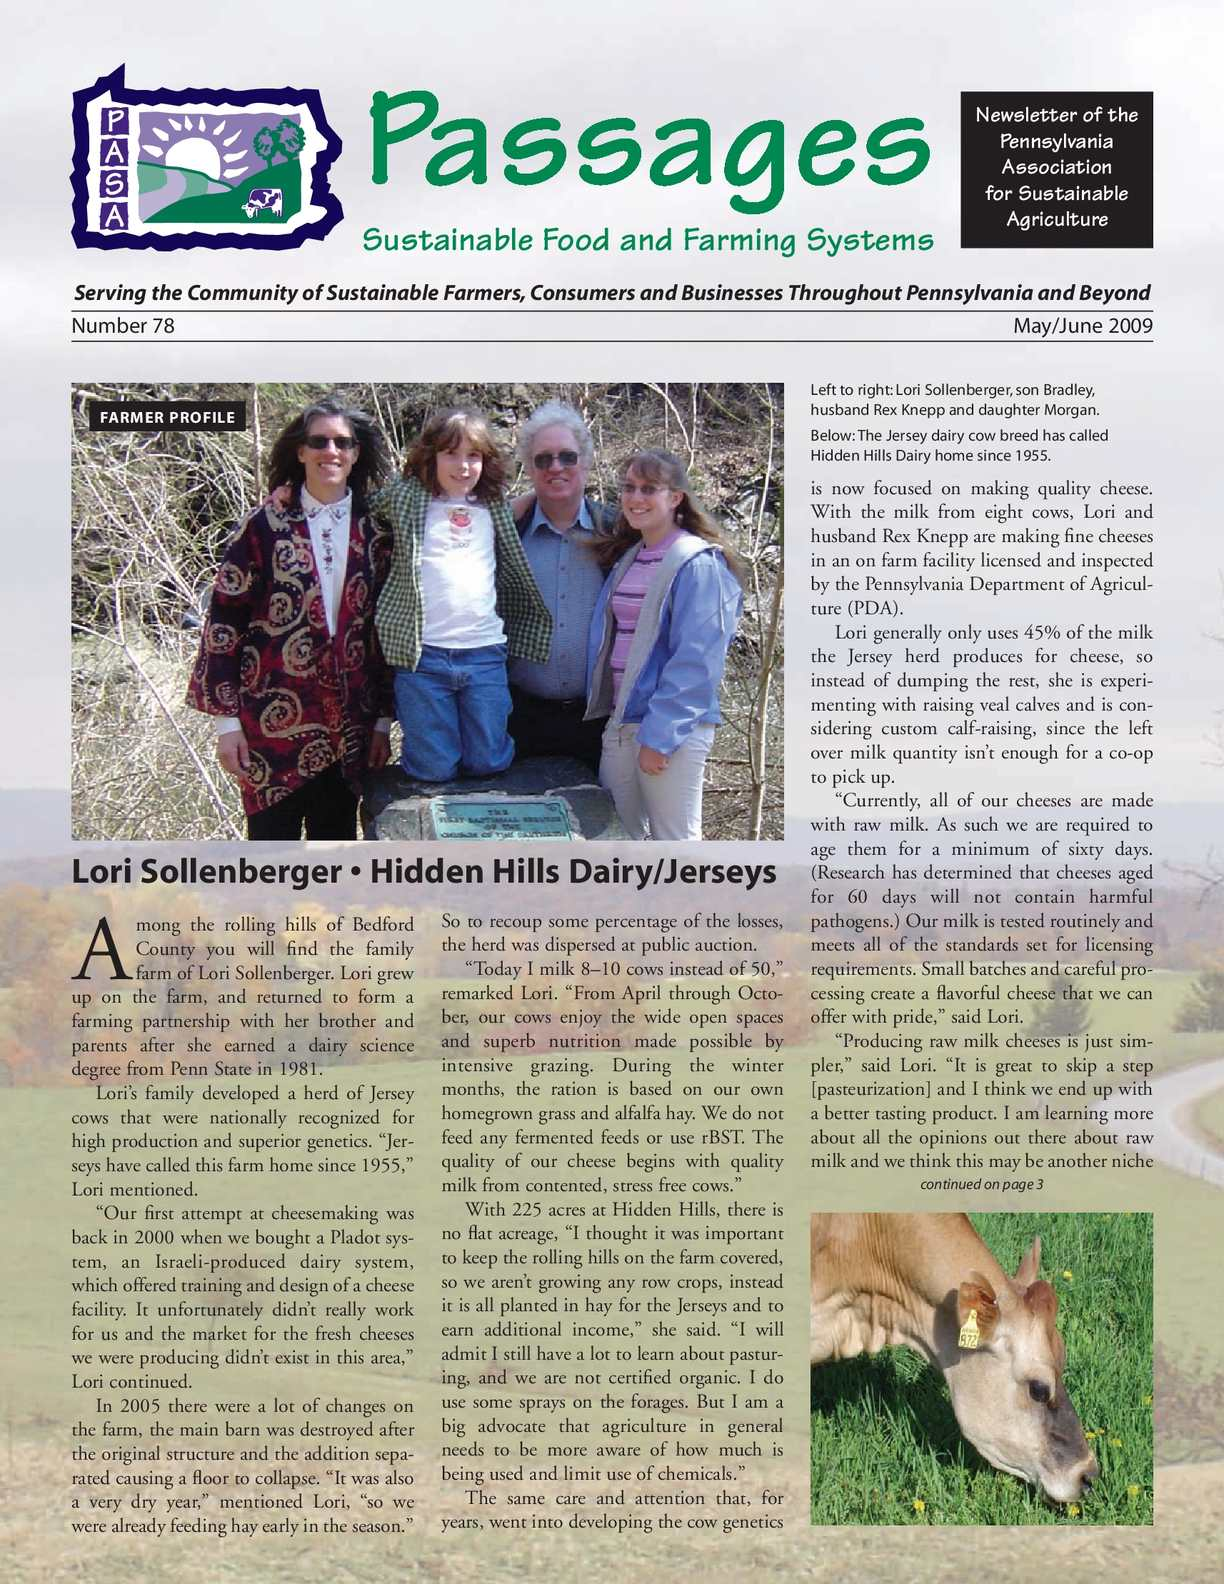 Calameo May June 2009 Sustainable Farming And Food Newsletter